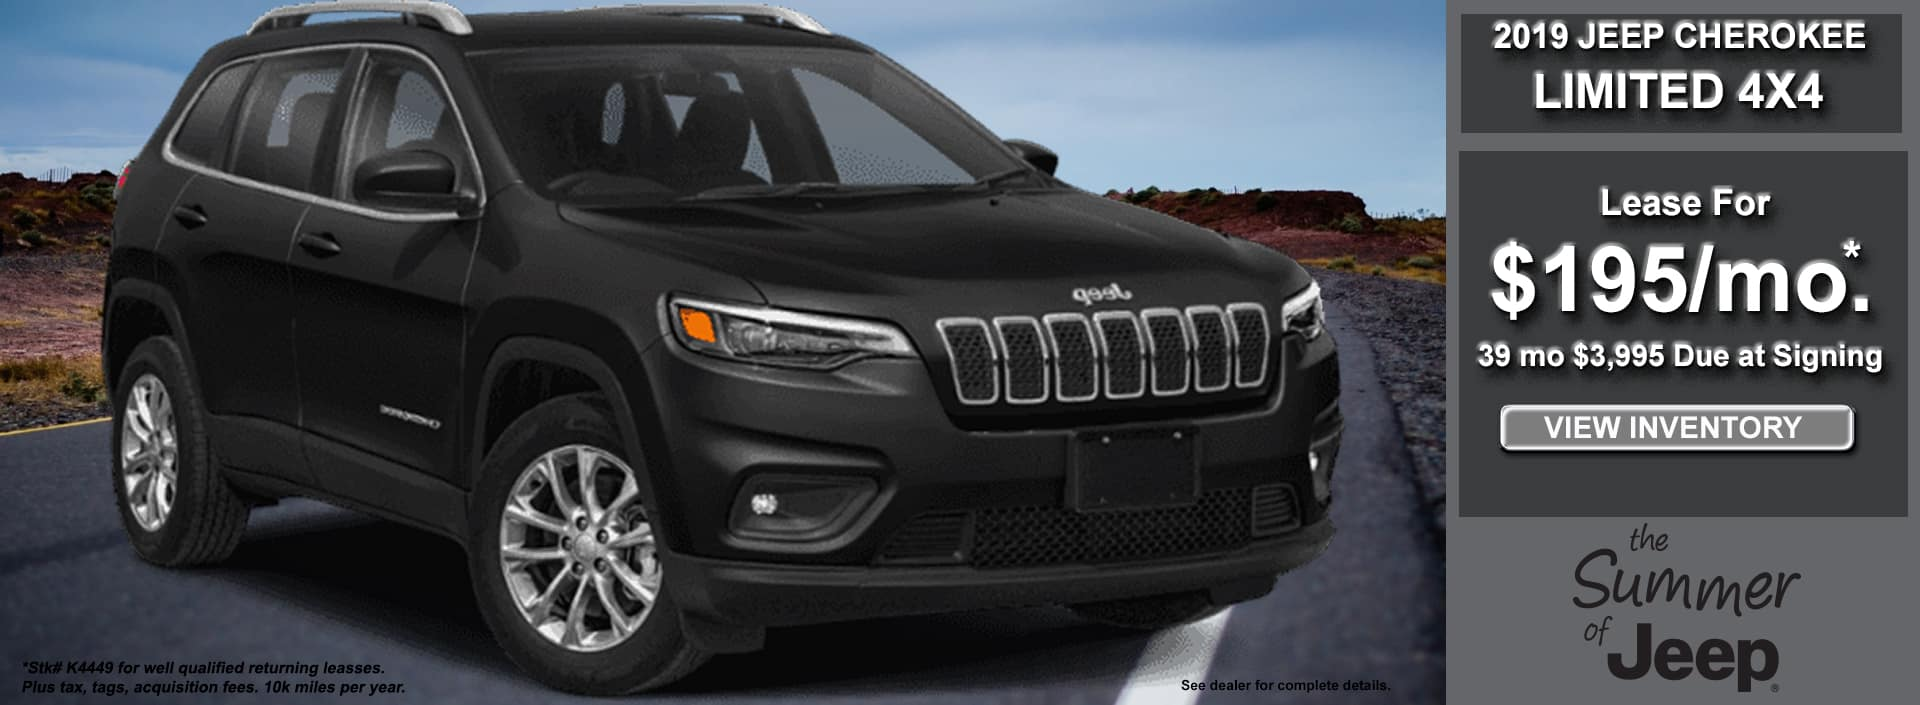 Cherokee Limited Lease June 2019